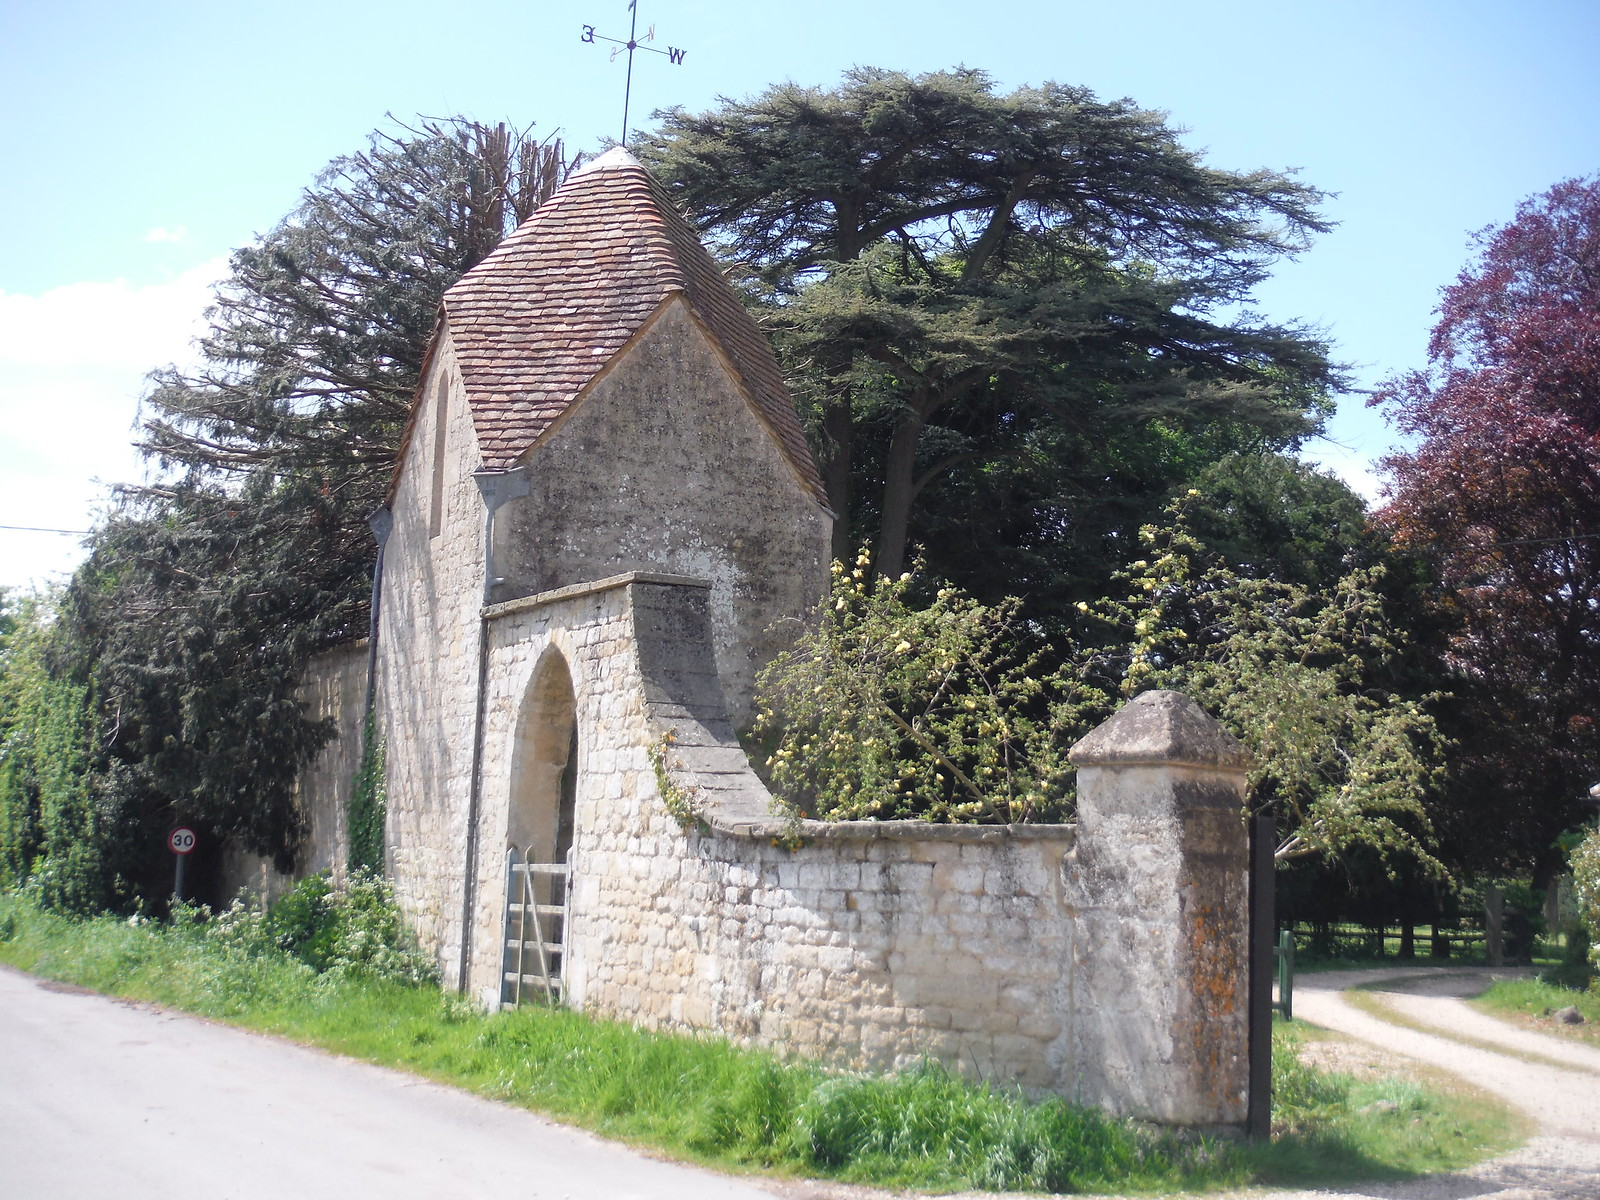 Gate House, Waterstock Equestrian Centre SWC Walk 190 - Thame Circular (Extension)